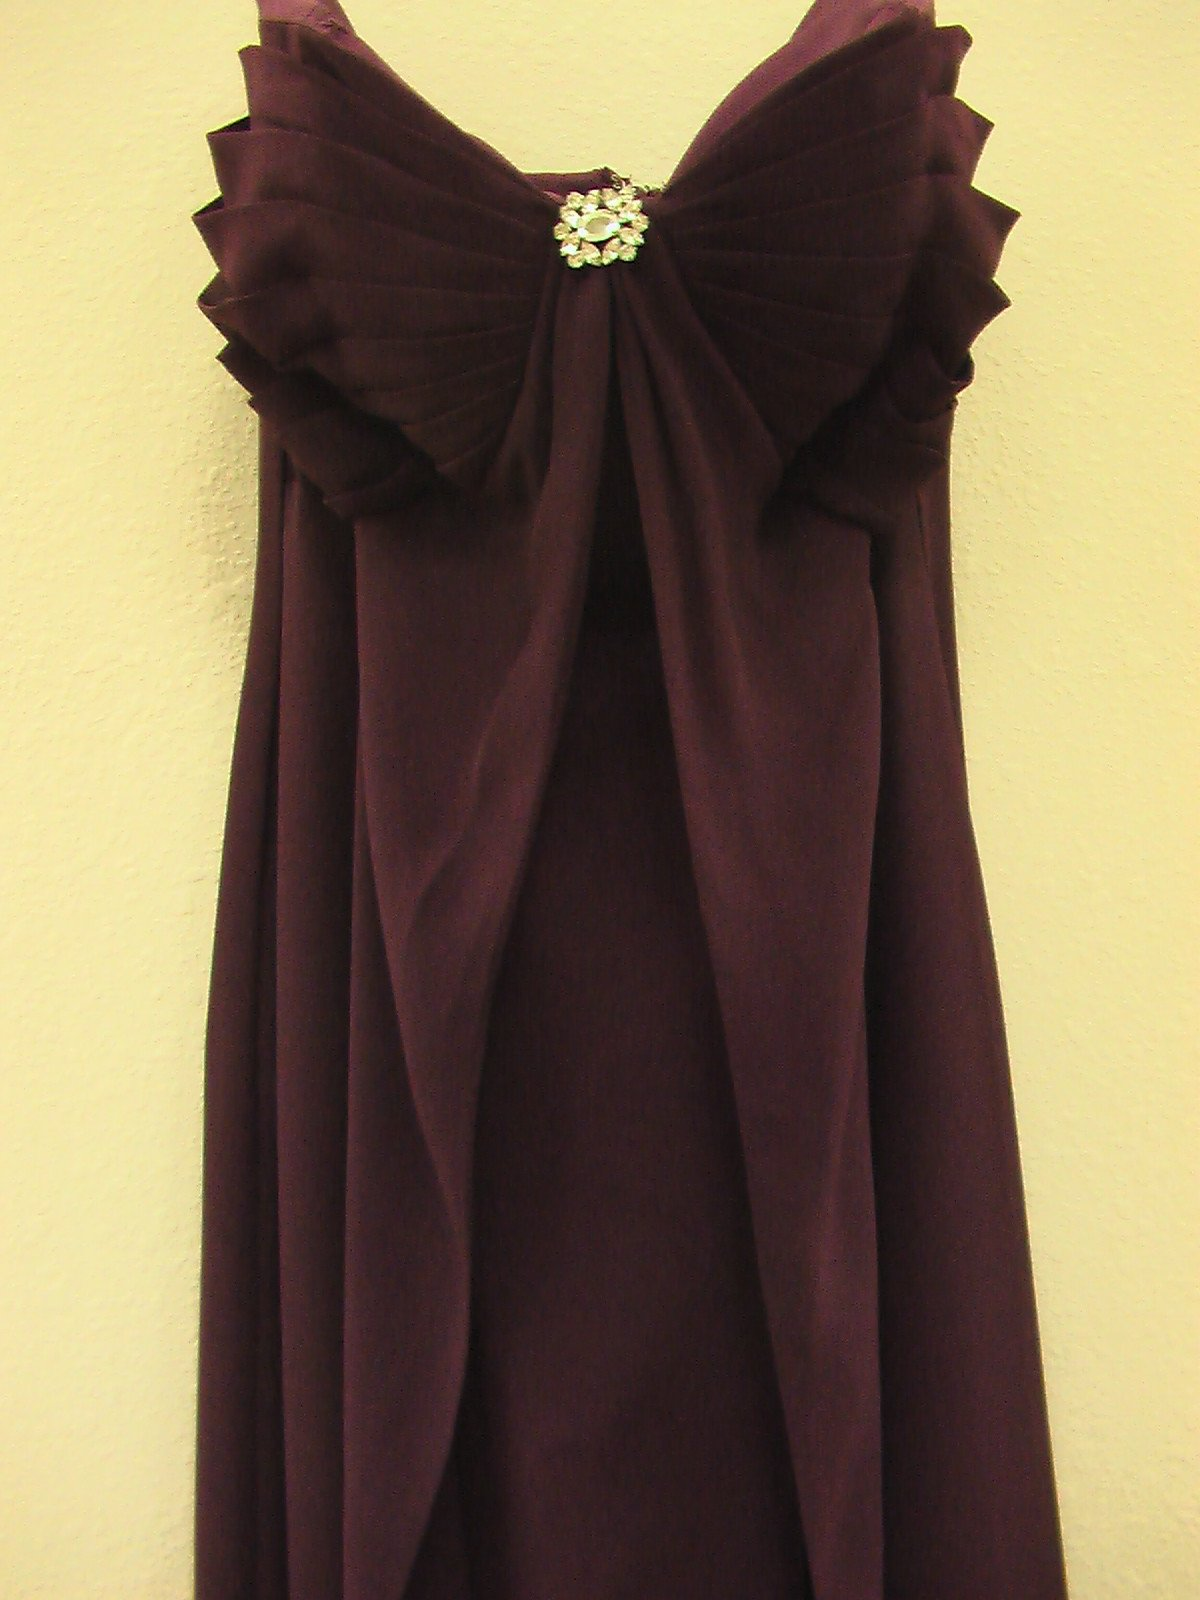 Pretty Maids 22451 Aubergine size 12 In Stock Bridesmaid Dress - Tom's Bridal